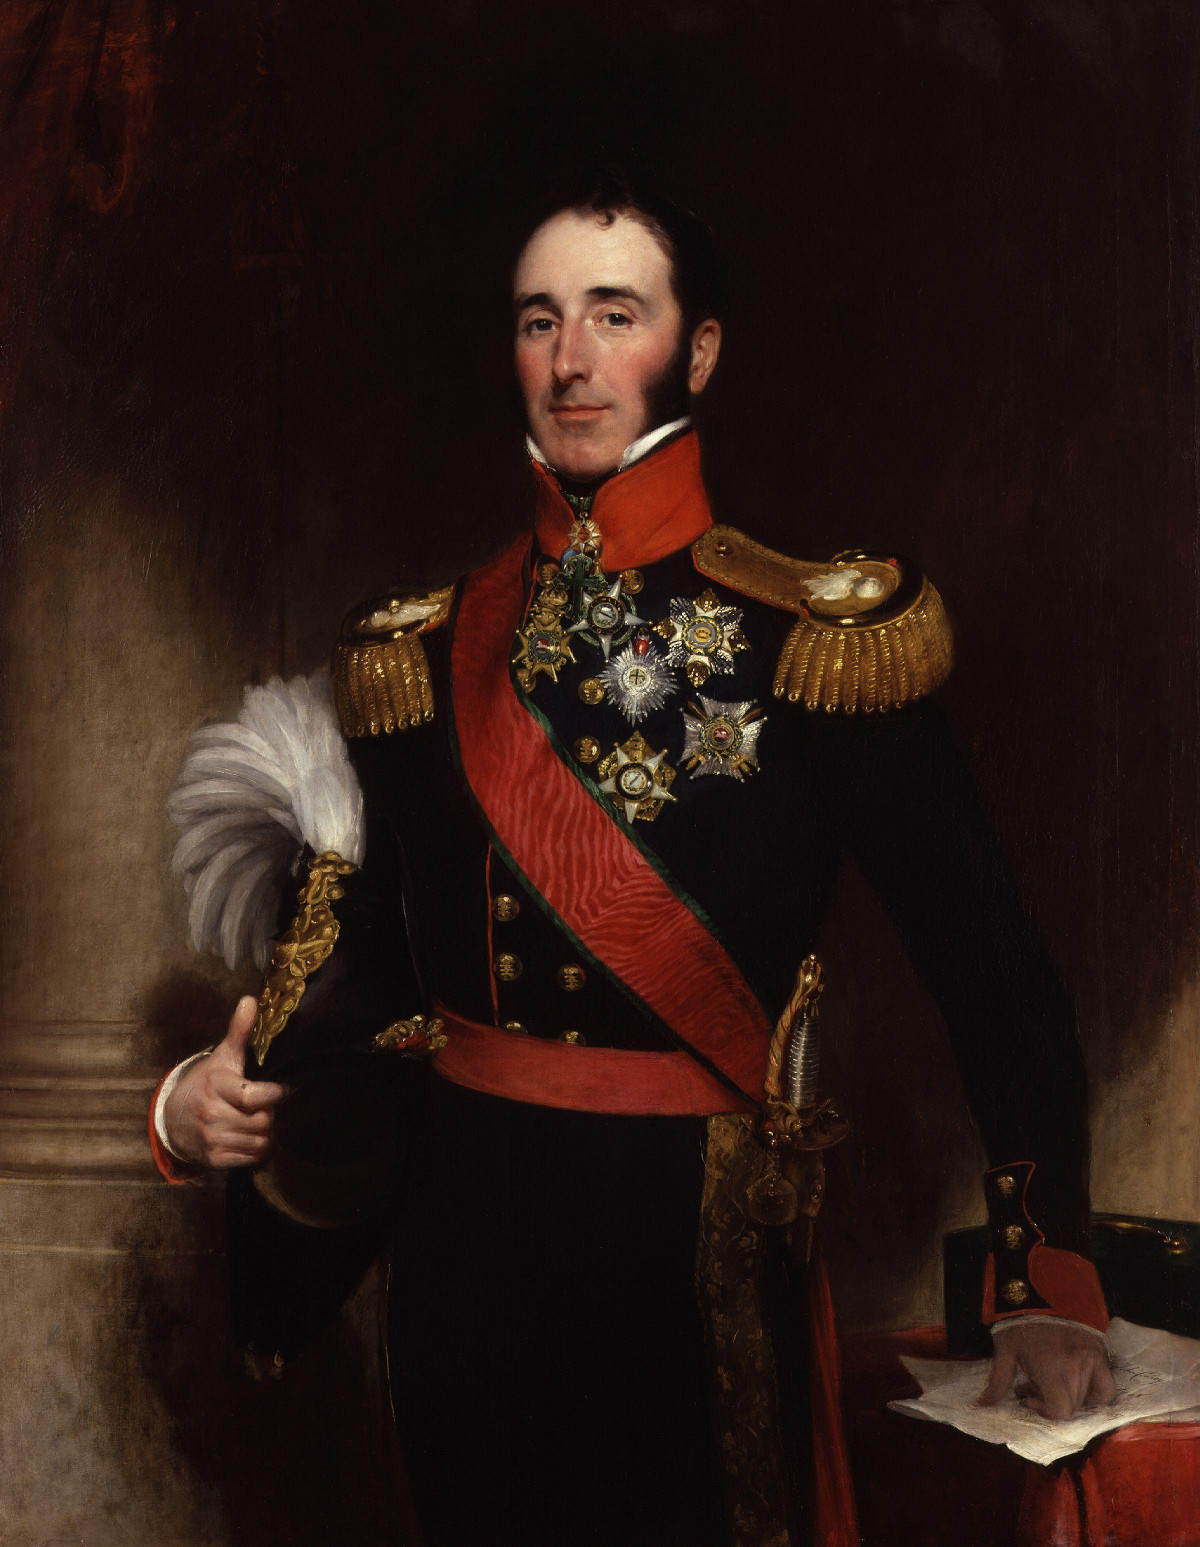 Sir John Ponsonby Conroy, 1st Baronet by Henry William Pickersgill, 1837